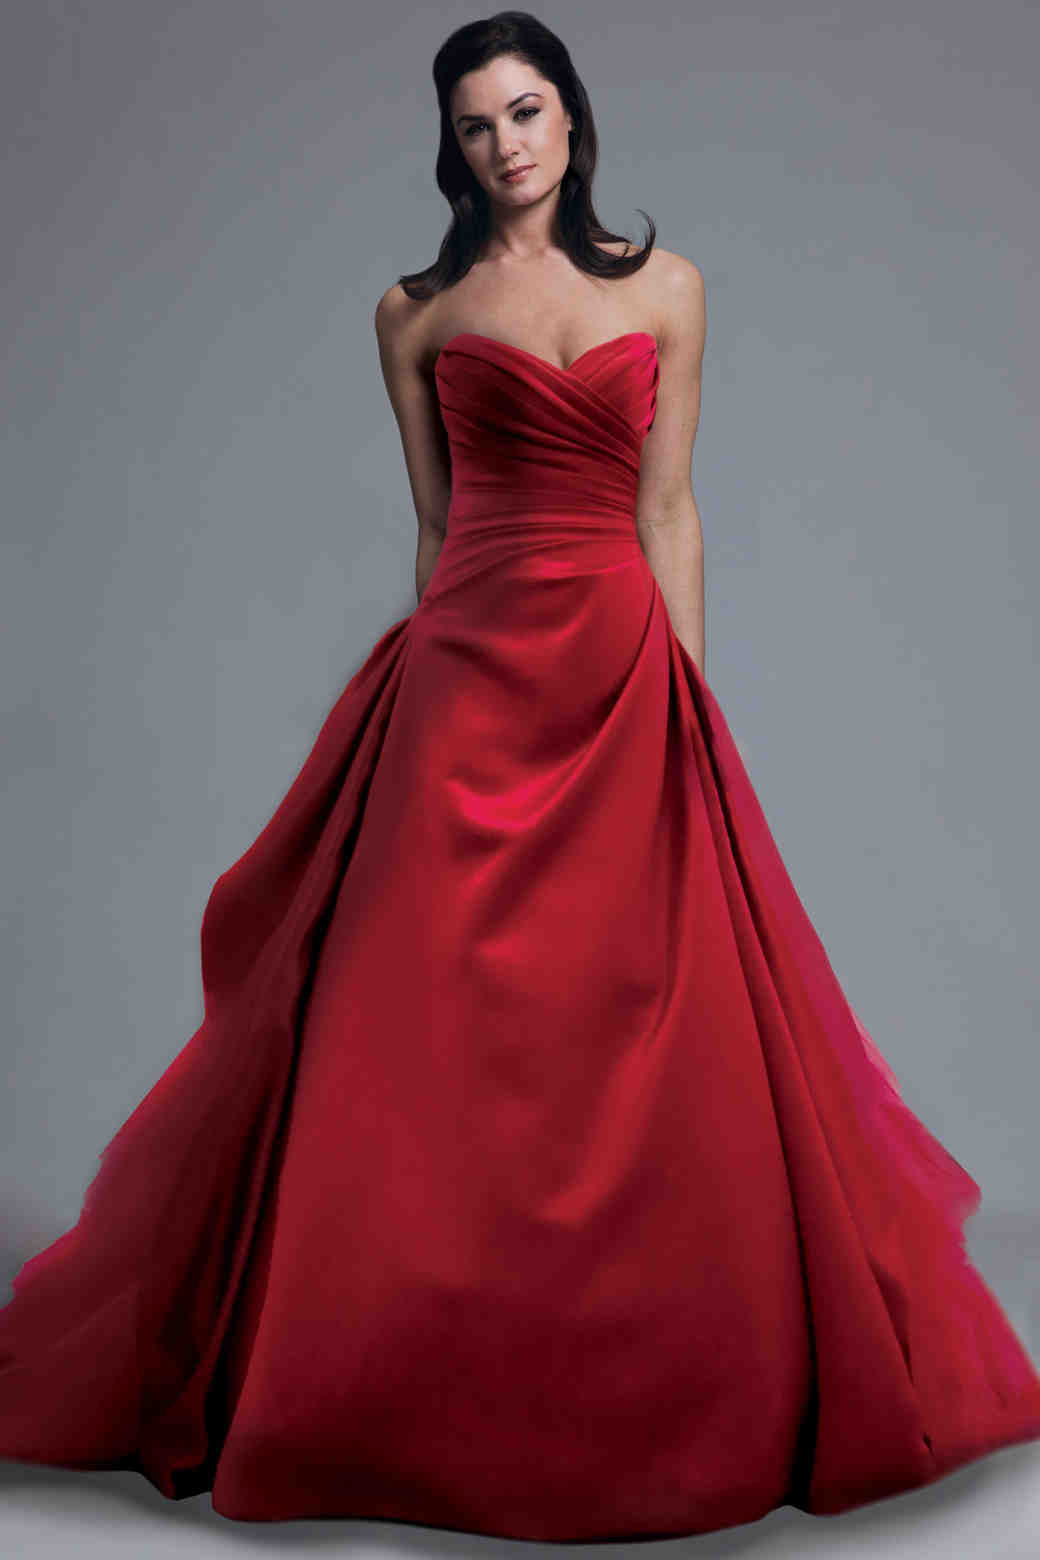 perfect gowns outdoor wedding party wedding dresses Red Wedding Dresses Spring Bridal Fashion Week